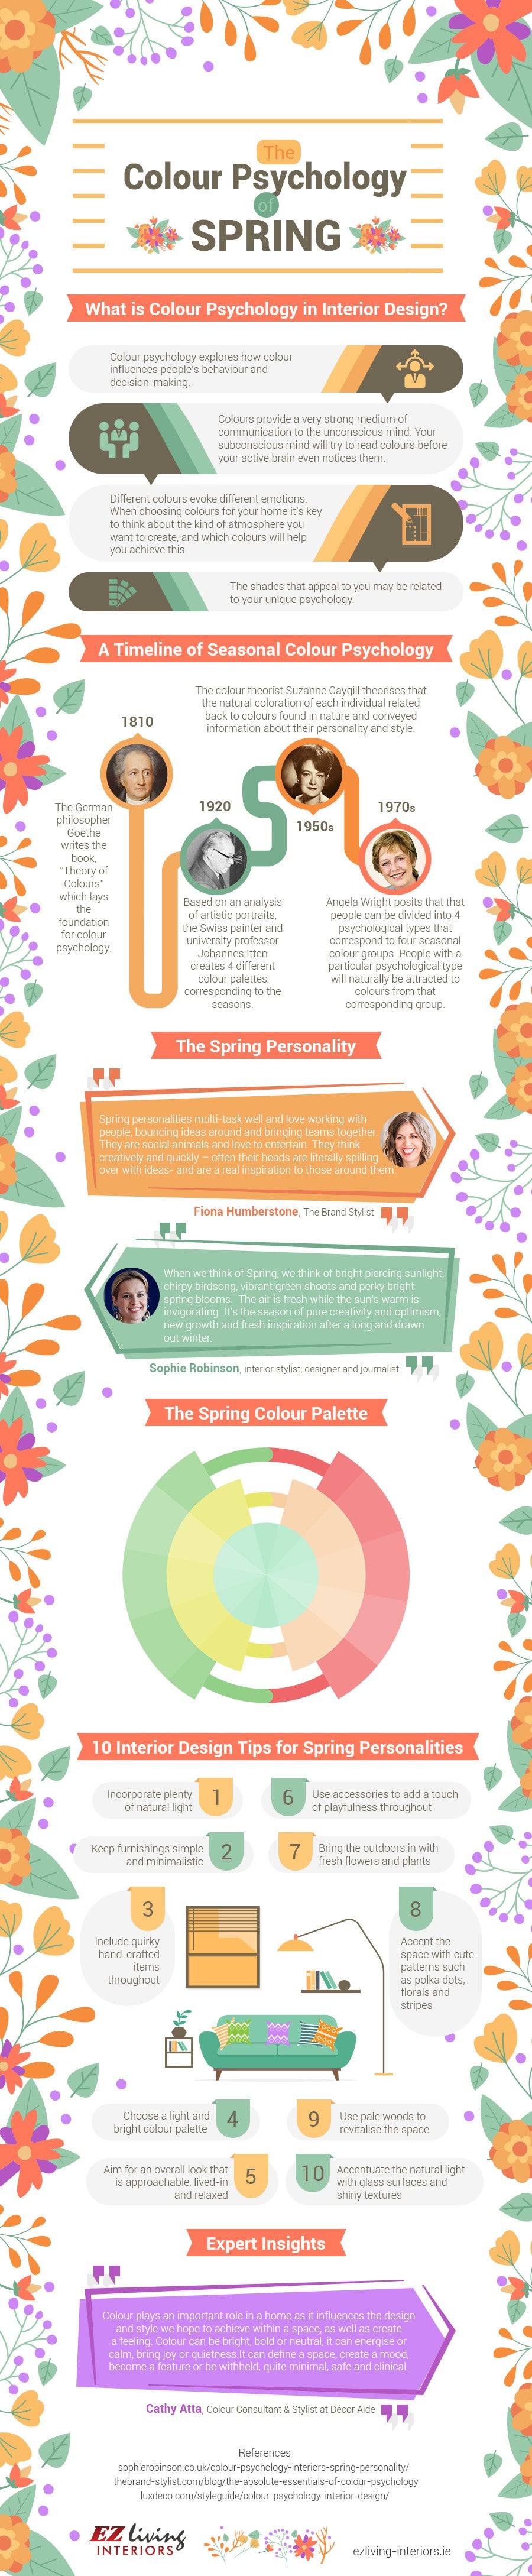 The Colour Psychology of Spring Infographic